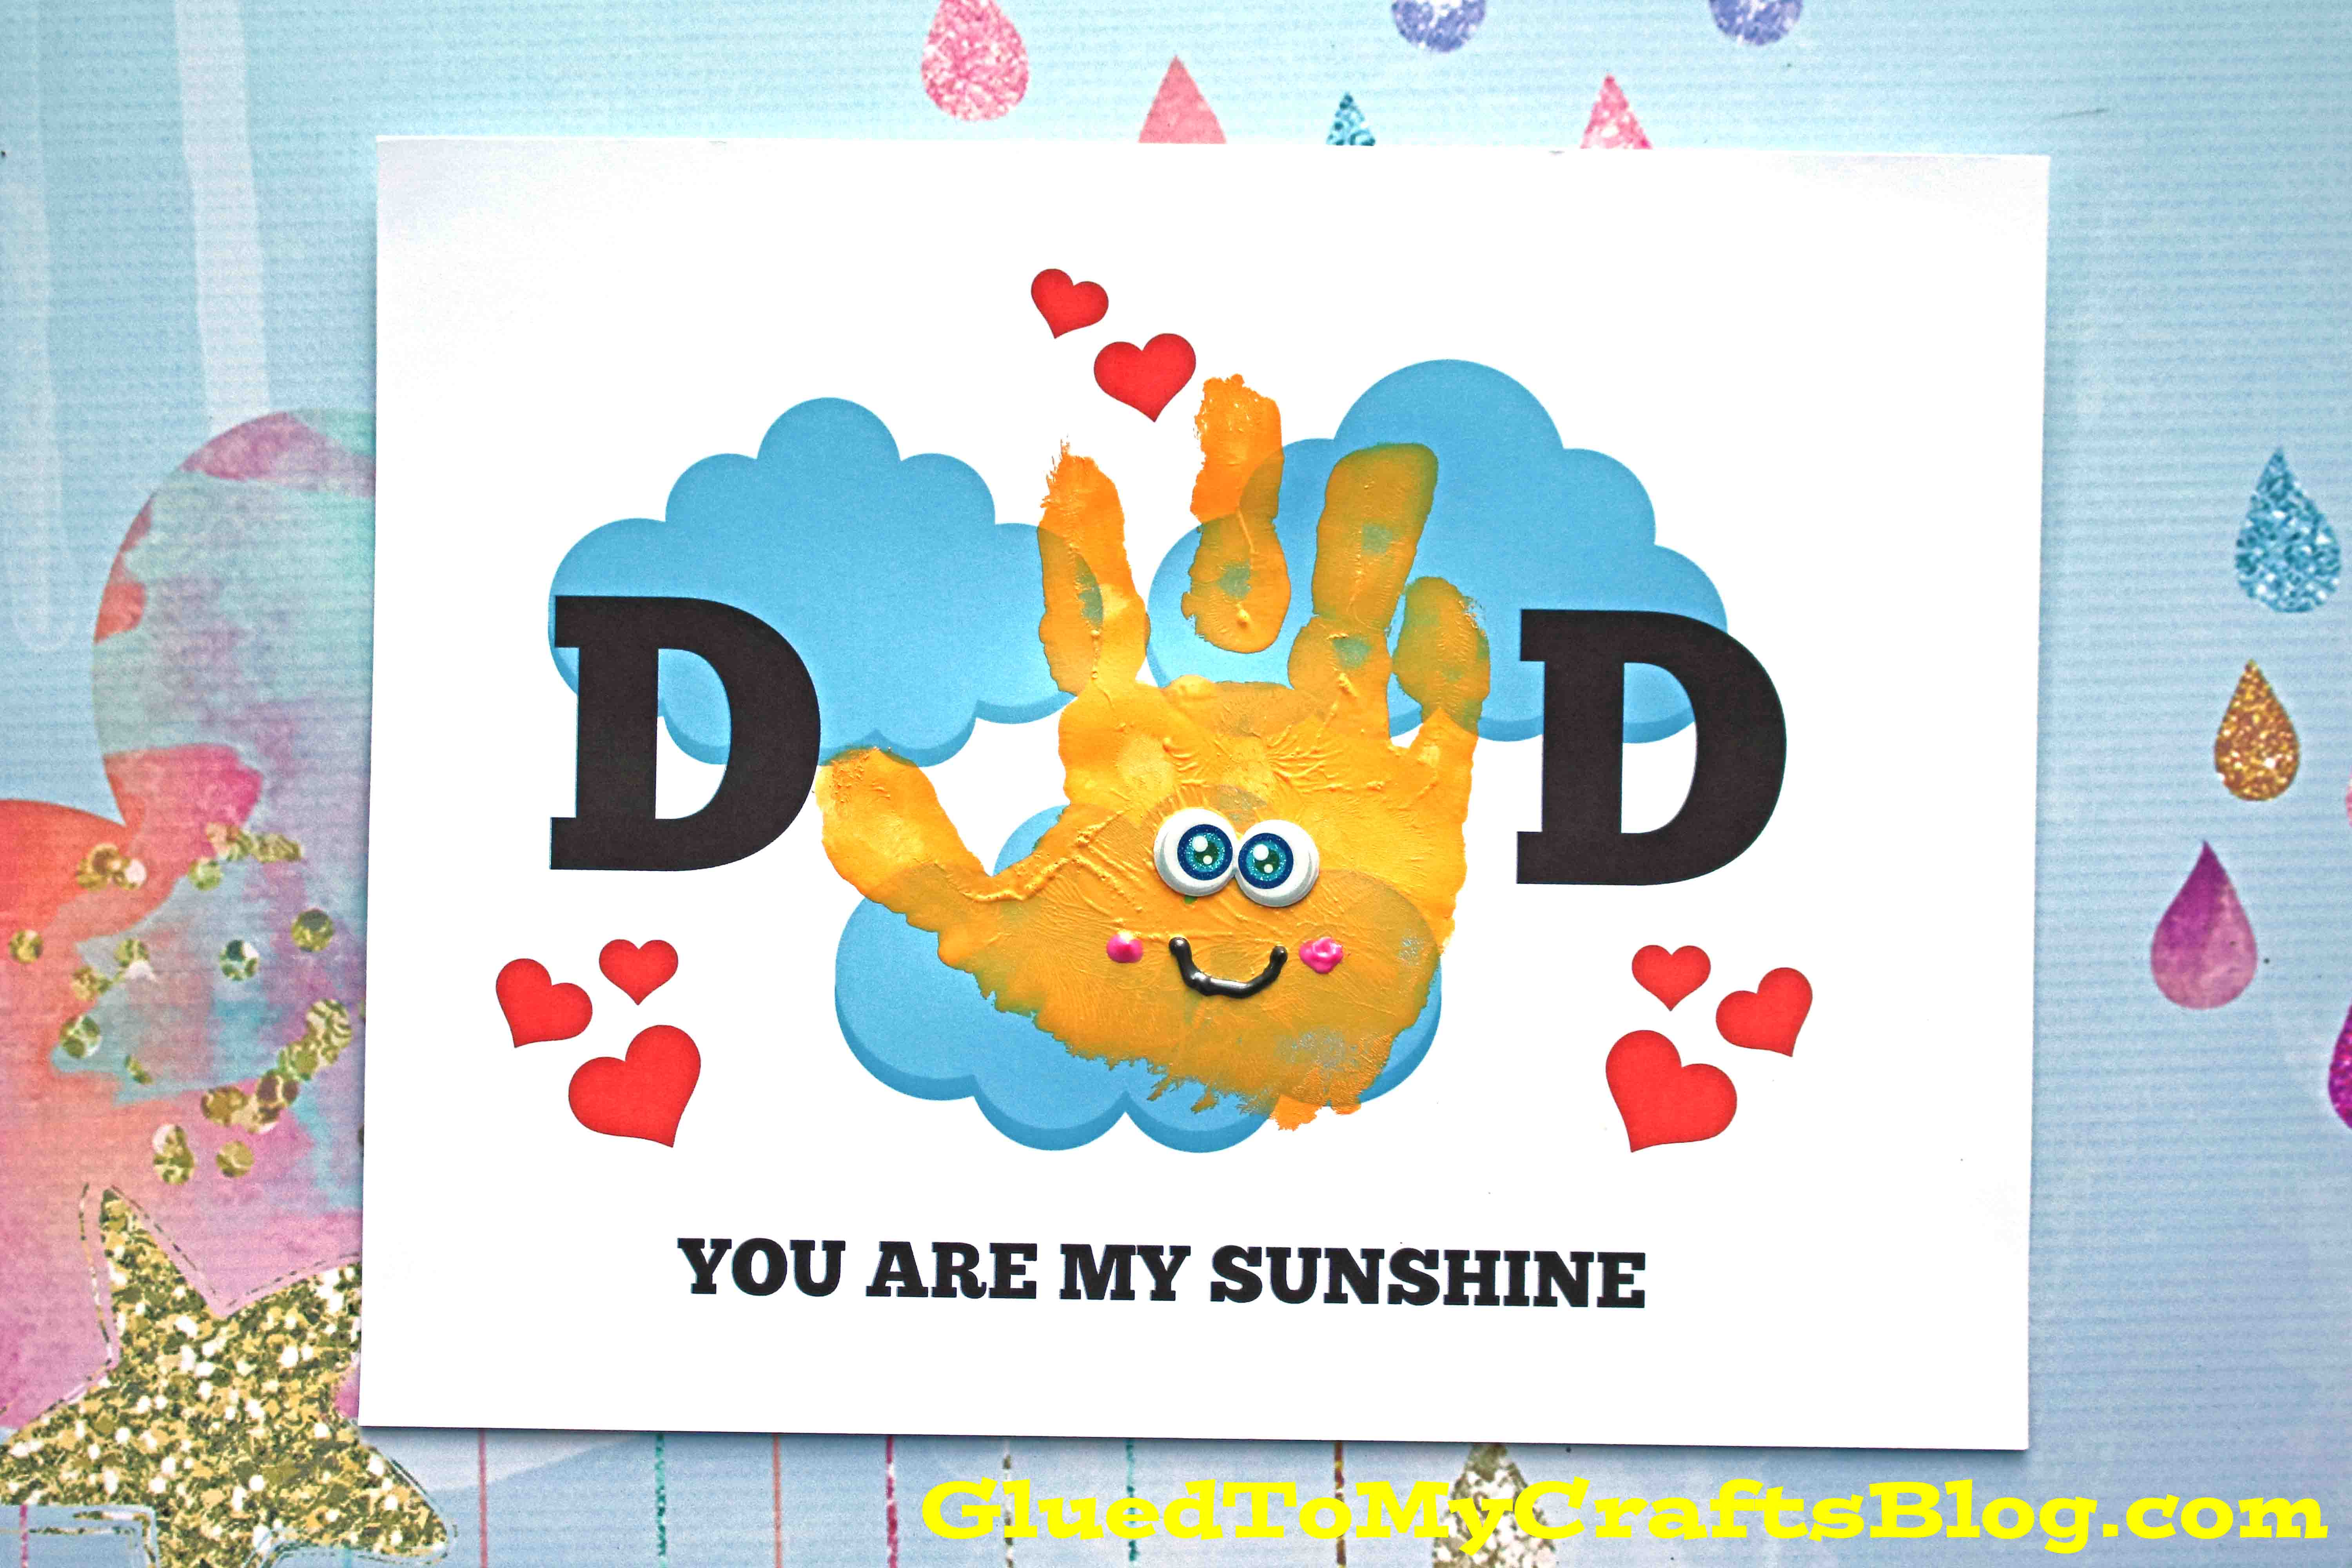 picture about You Are My Sunshine Free Printable identified as Handprint Father By yourself Are My Sunlight - No cost Printable